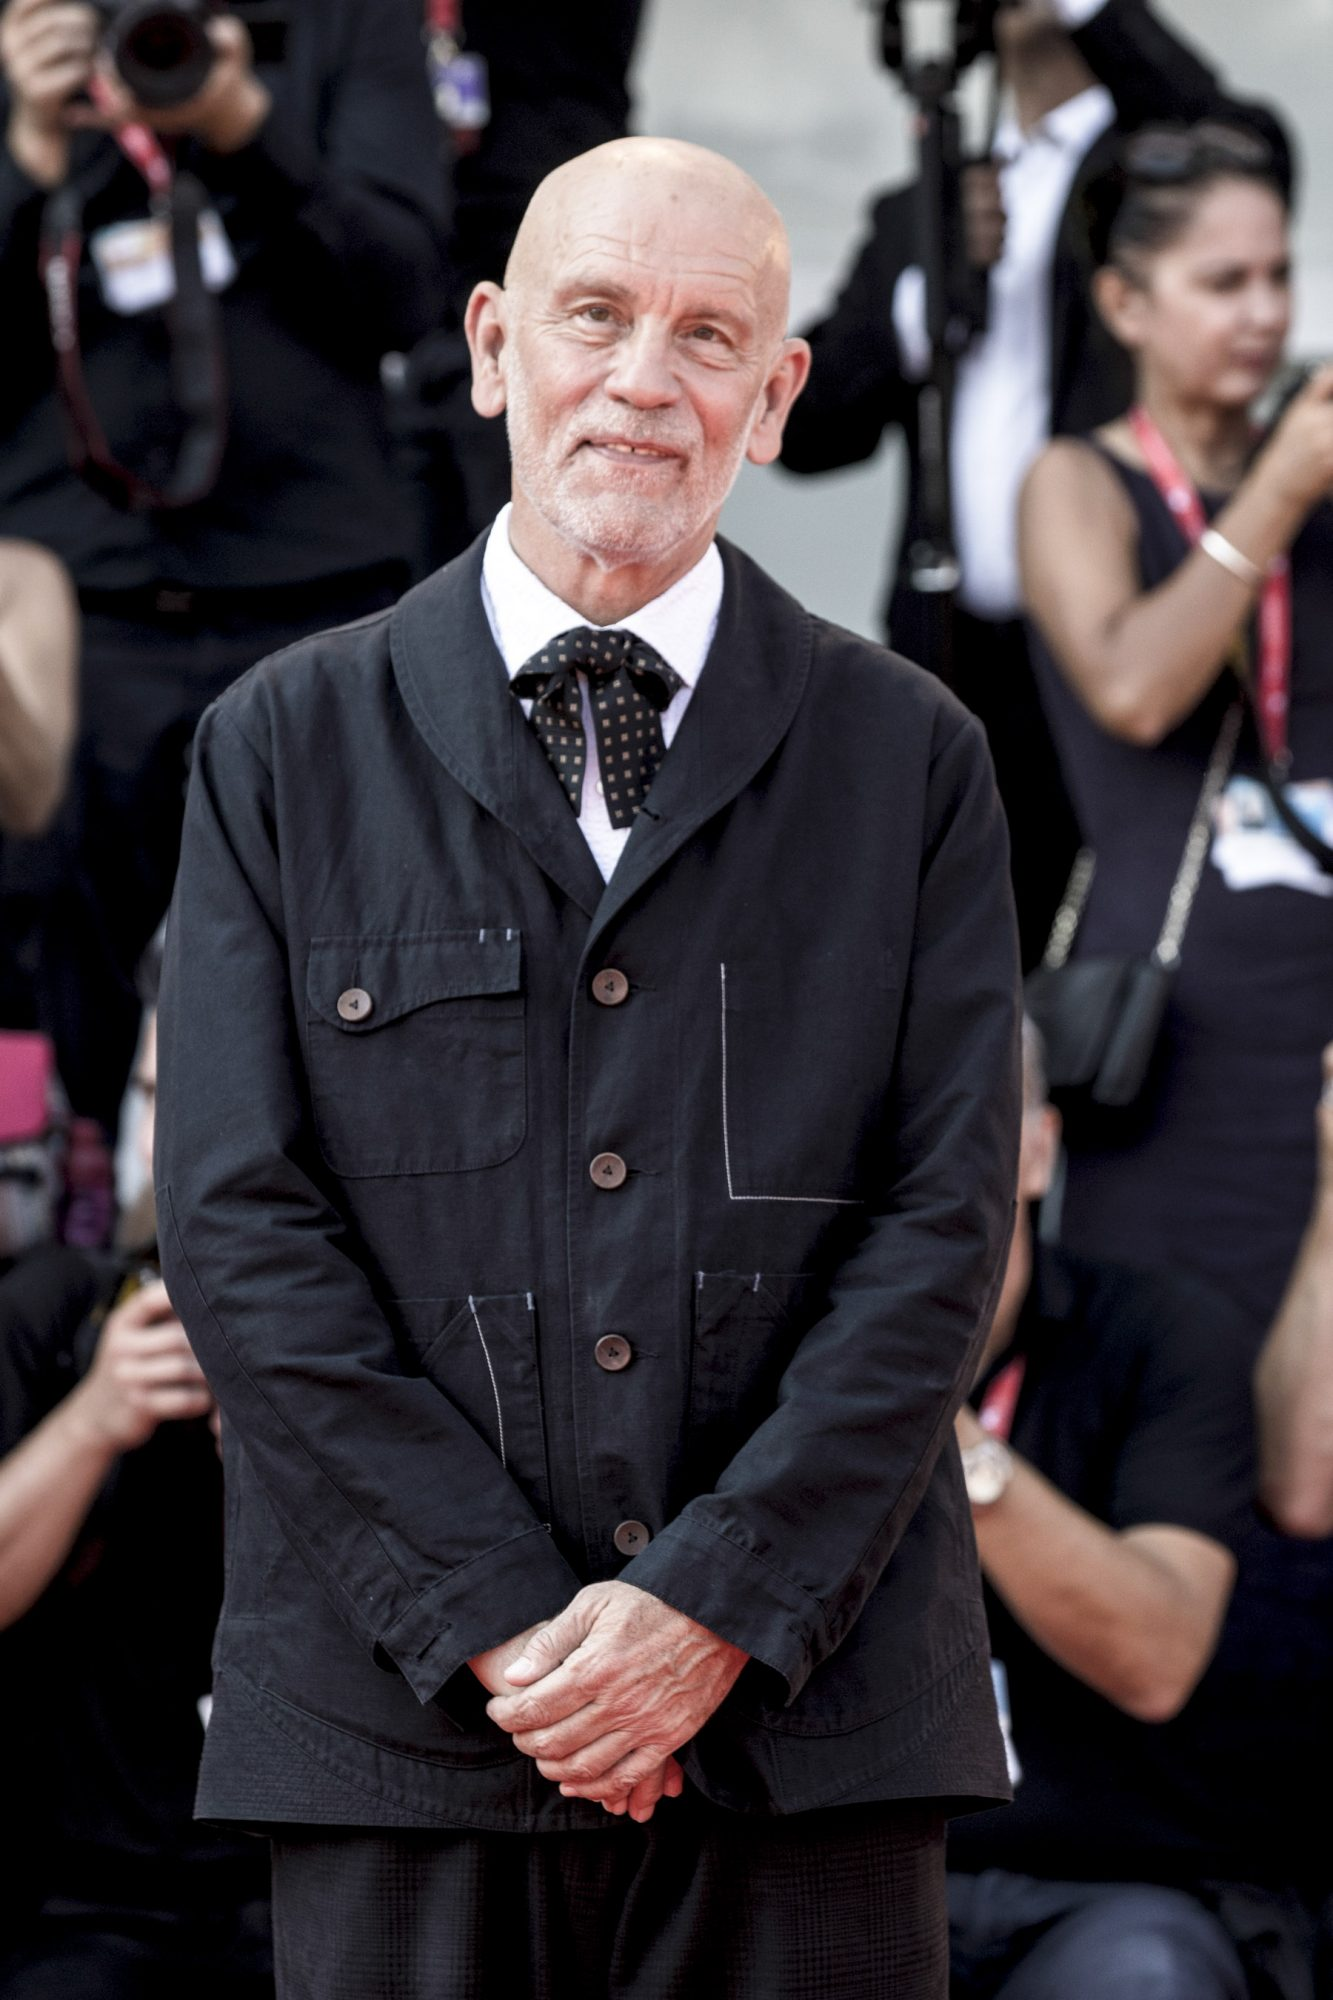 VENICE, ITALY - SEPTEMBER 01: John Malkovich attends the Campari award ceremony to Luca Bigazzi during the 76th Venice Film Festival at Sala Grande on September 01, 2019 in Venice, Italy. (Photo by Alessandra Benedetti - Corbis/Corbis via Getty Images)